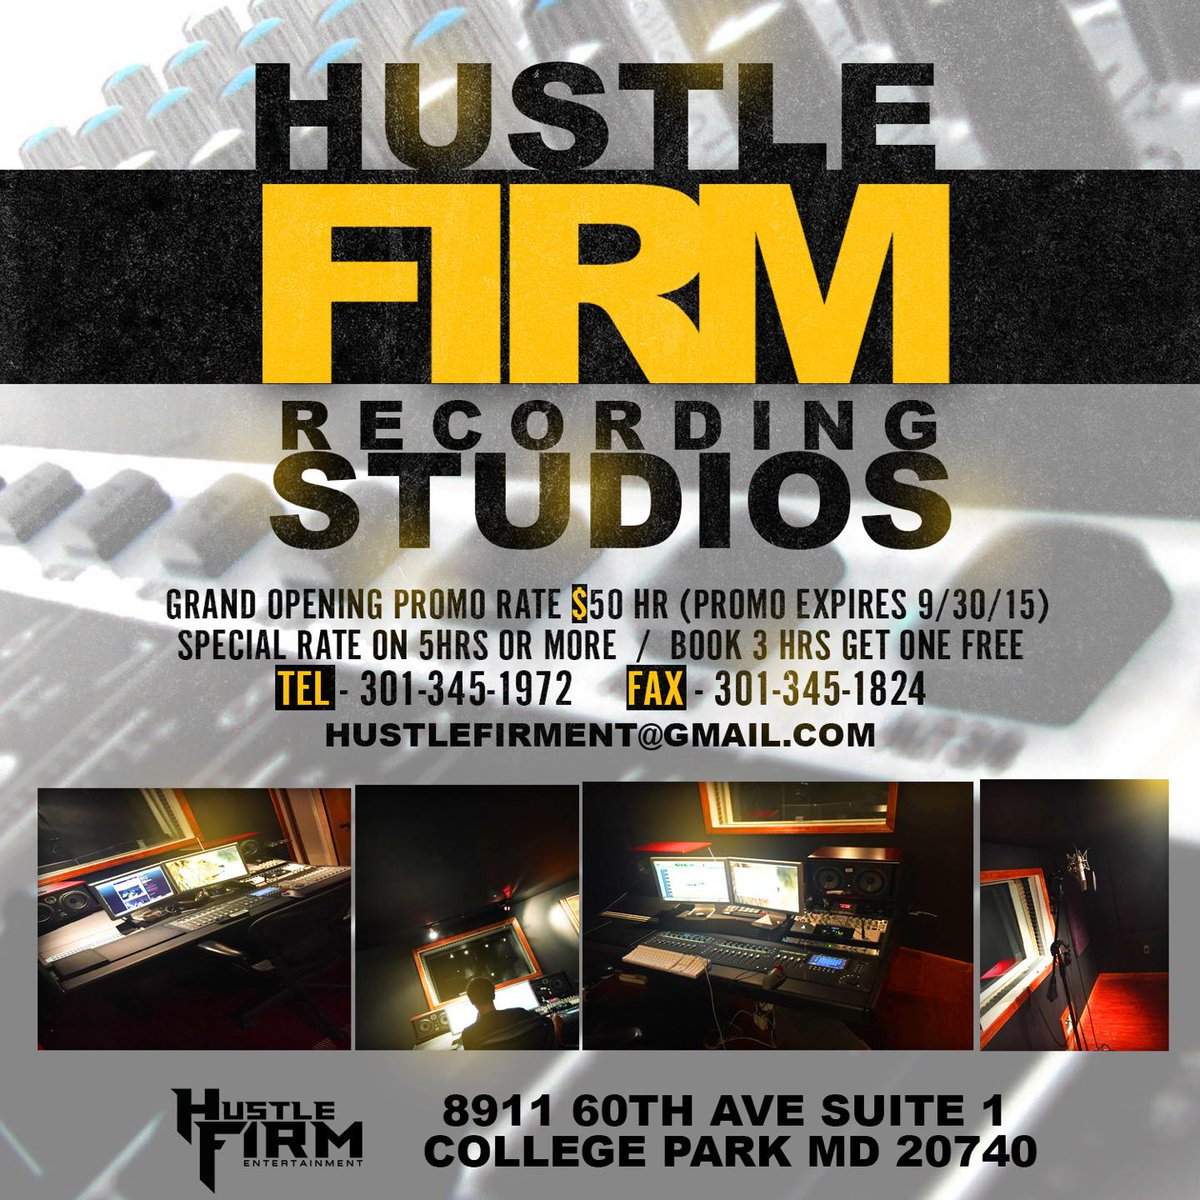 Grand opening specials... (@ Hustle Firm Entertainment, LLC - @hustlefirment) https://t.co/FtMb8Oc4SD http://t.co/gzrhTPh0c8